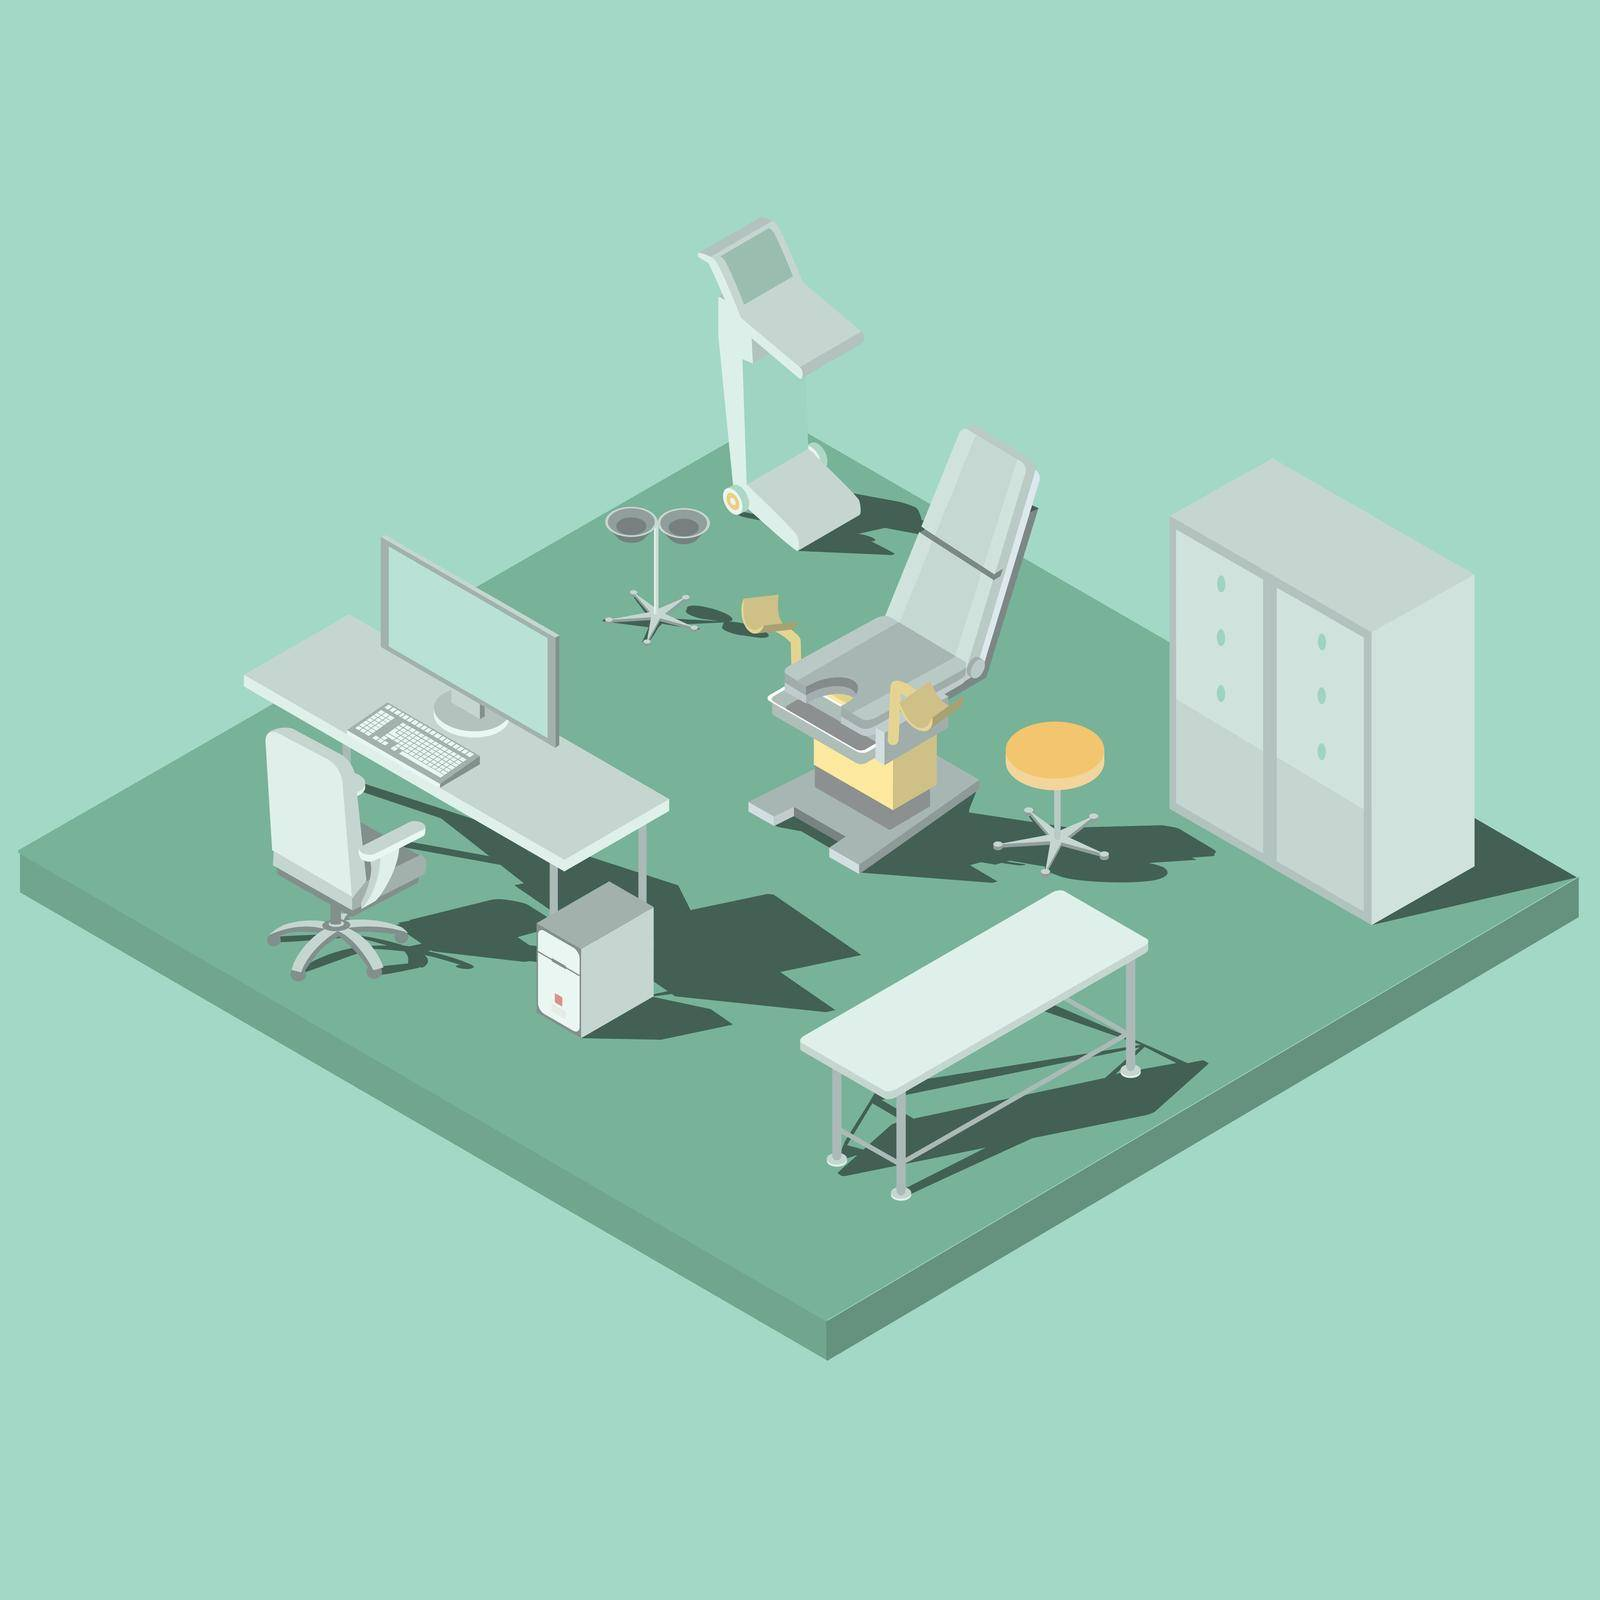 3D flat isometric illustrations interior of medical premises in the clinic, gynecological office with equipment